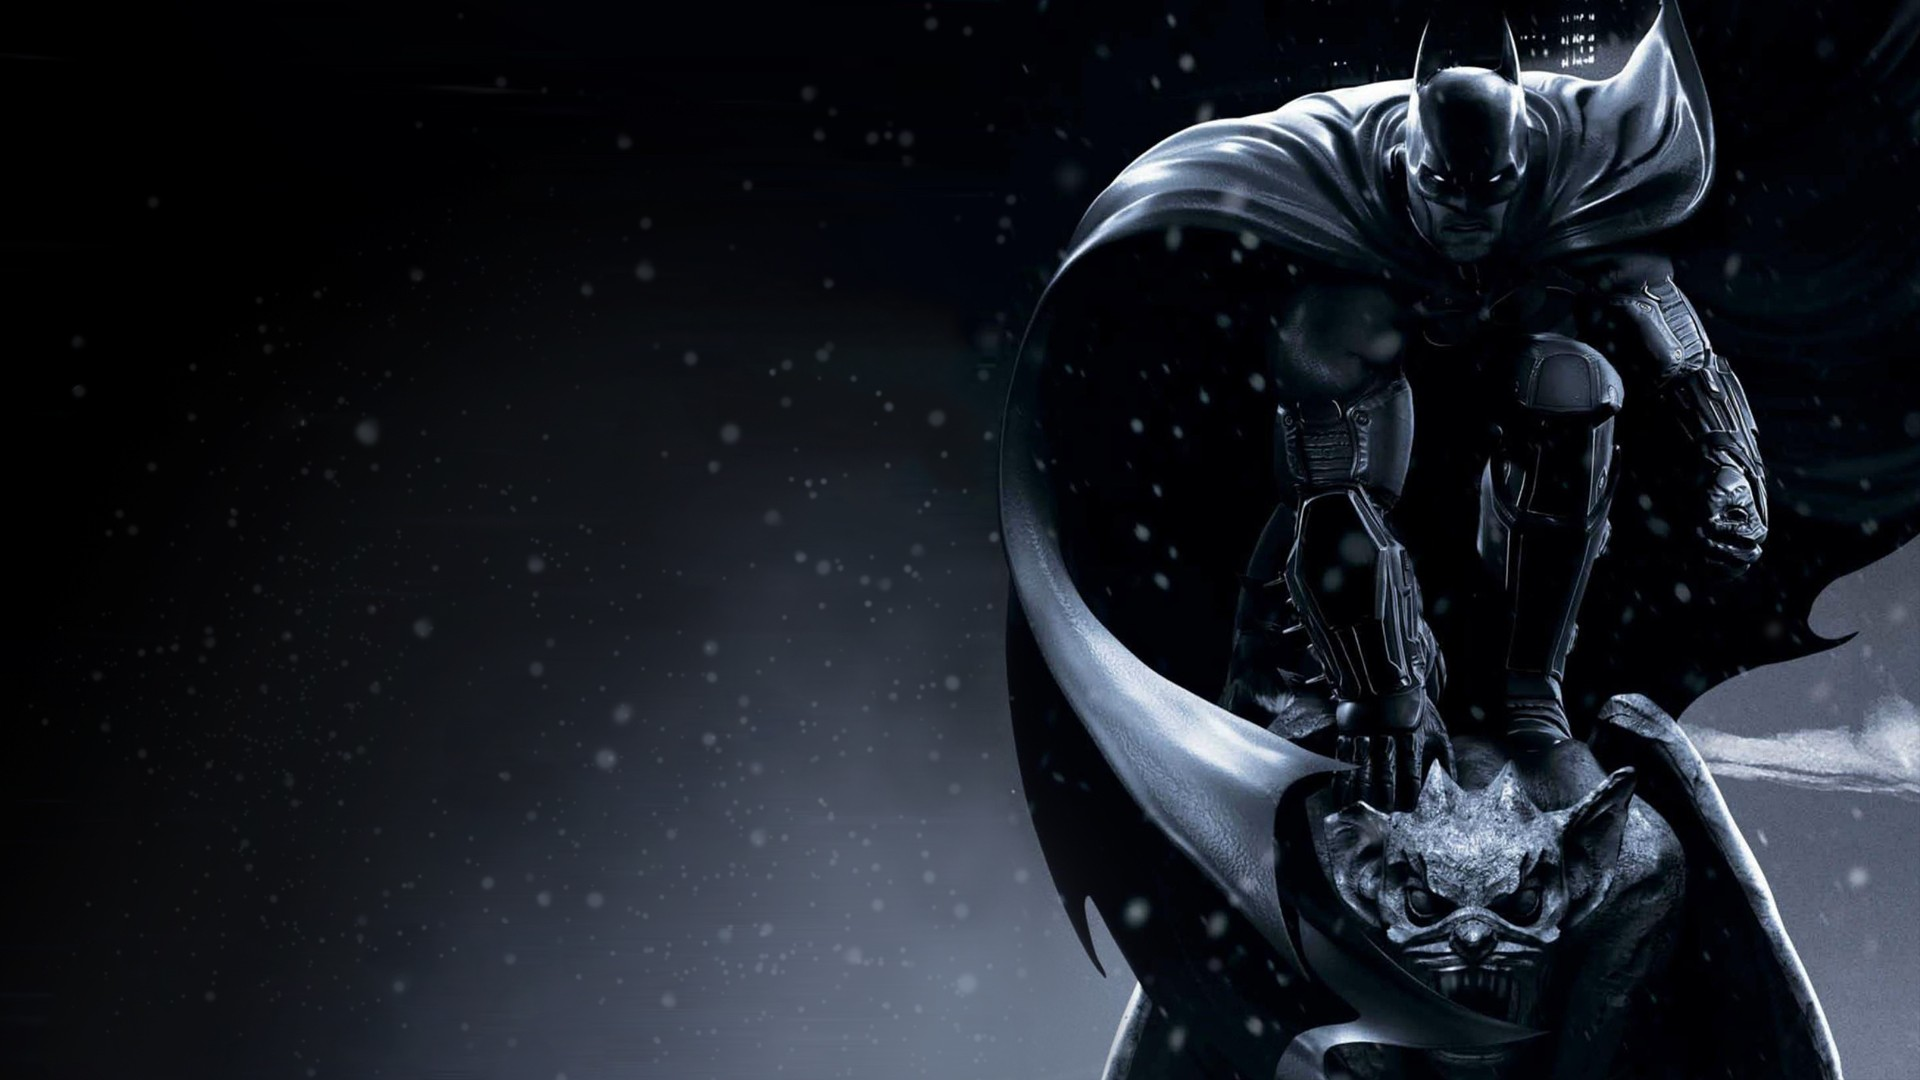 Batman Arkham Origins 2013 Wallpapers HD Wallpapers 1920x1080